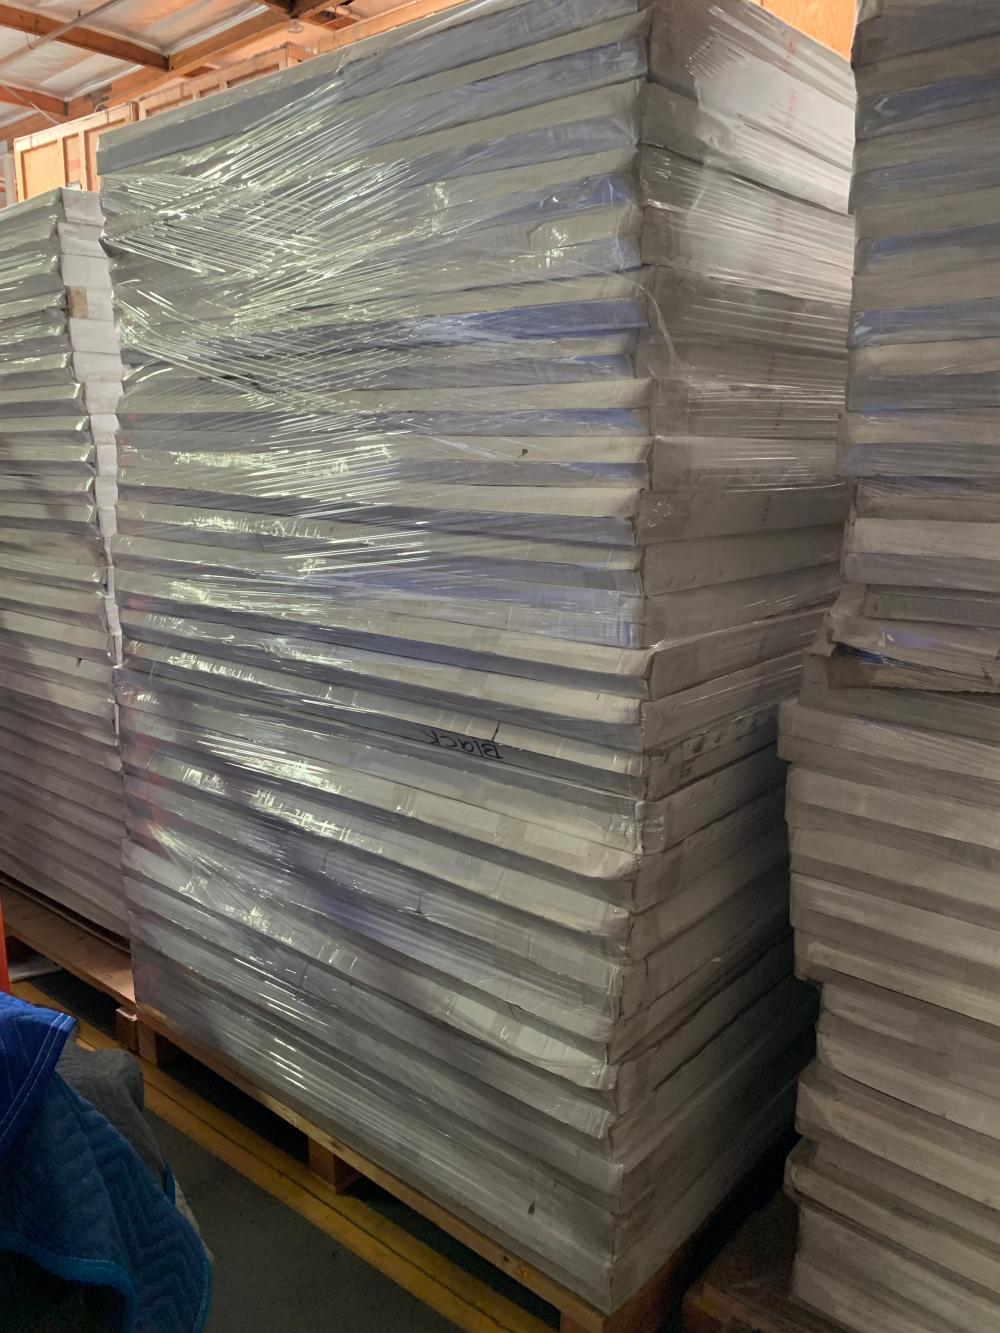 Pallet of Picture Frames 18